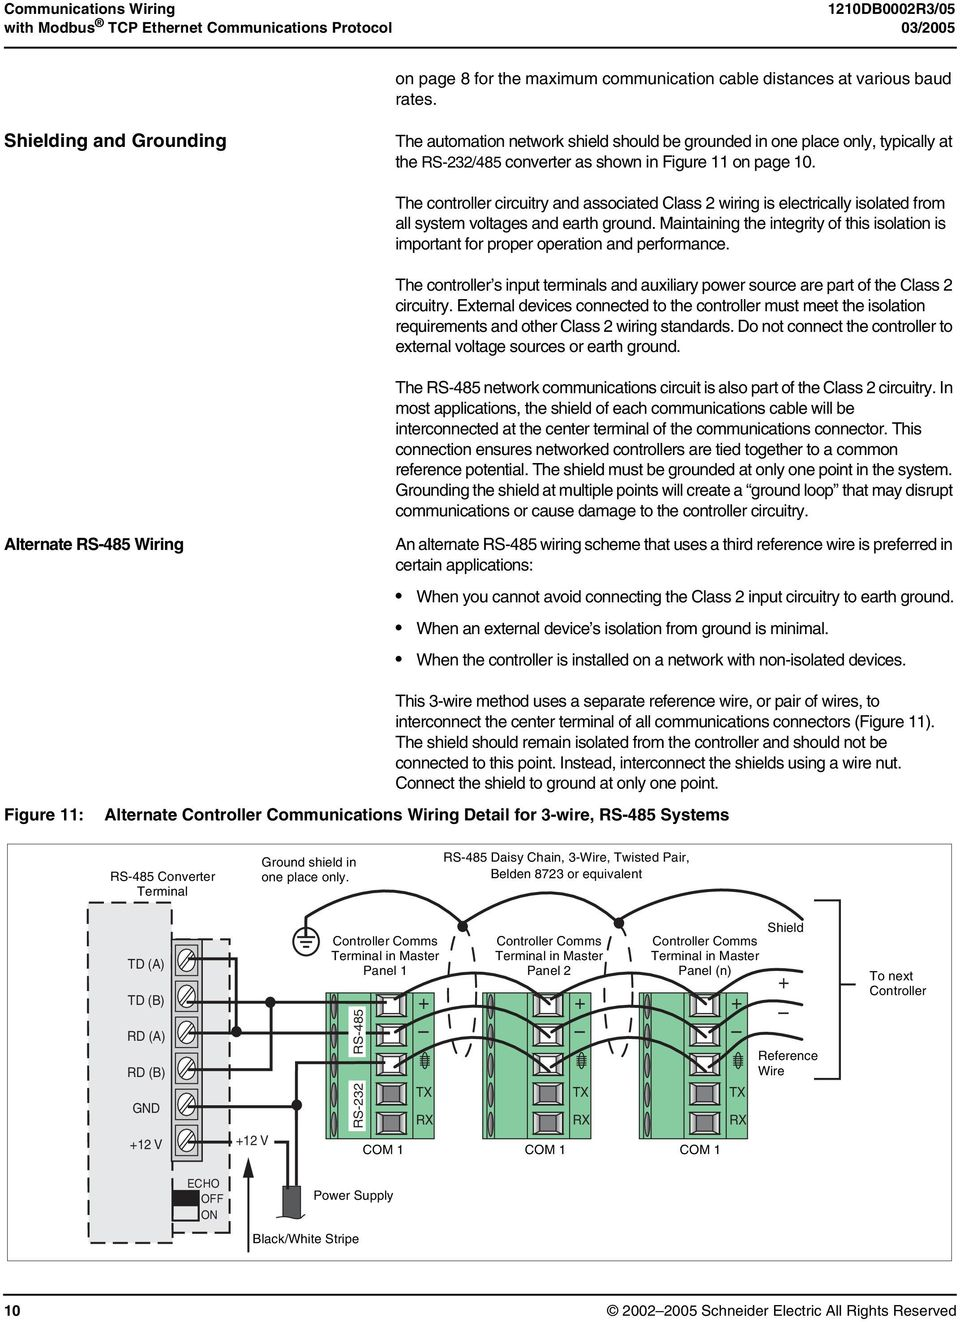 Amazing Data Bulletin Communications Wiring For Powerlink G3 Systems Class Wiring Digital Resources Timewpwclawcorpcom